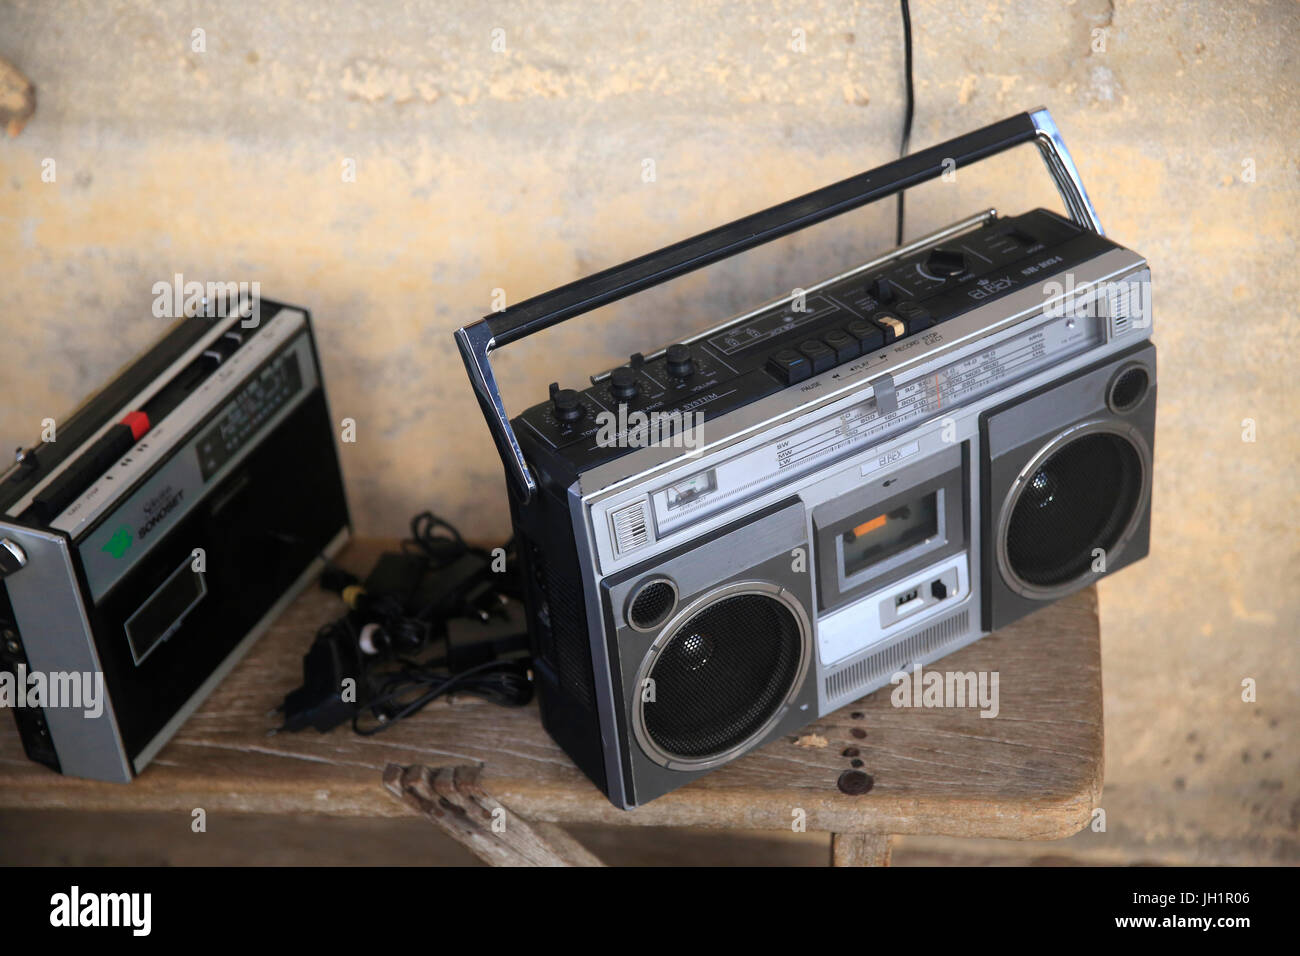 Old portable radios. Lome. Togo. - Stock Image